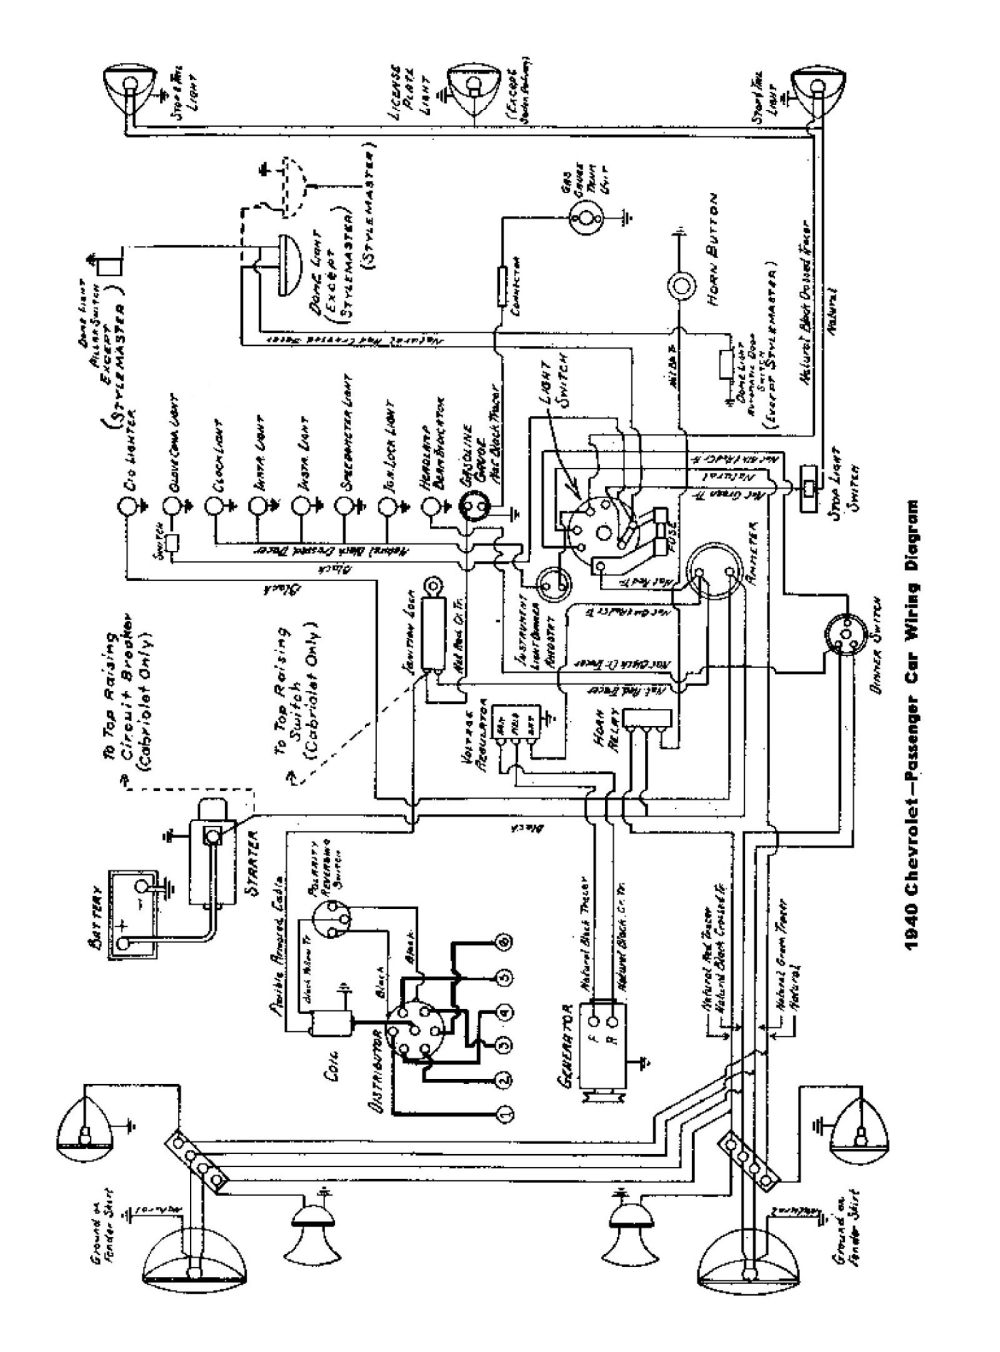 medium resolution of international truck wiring harness for 67 wiring diagrams konsult 1974 international truck wiring harness